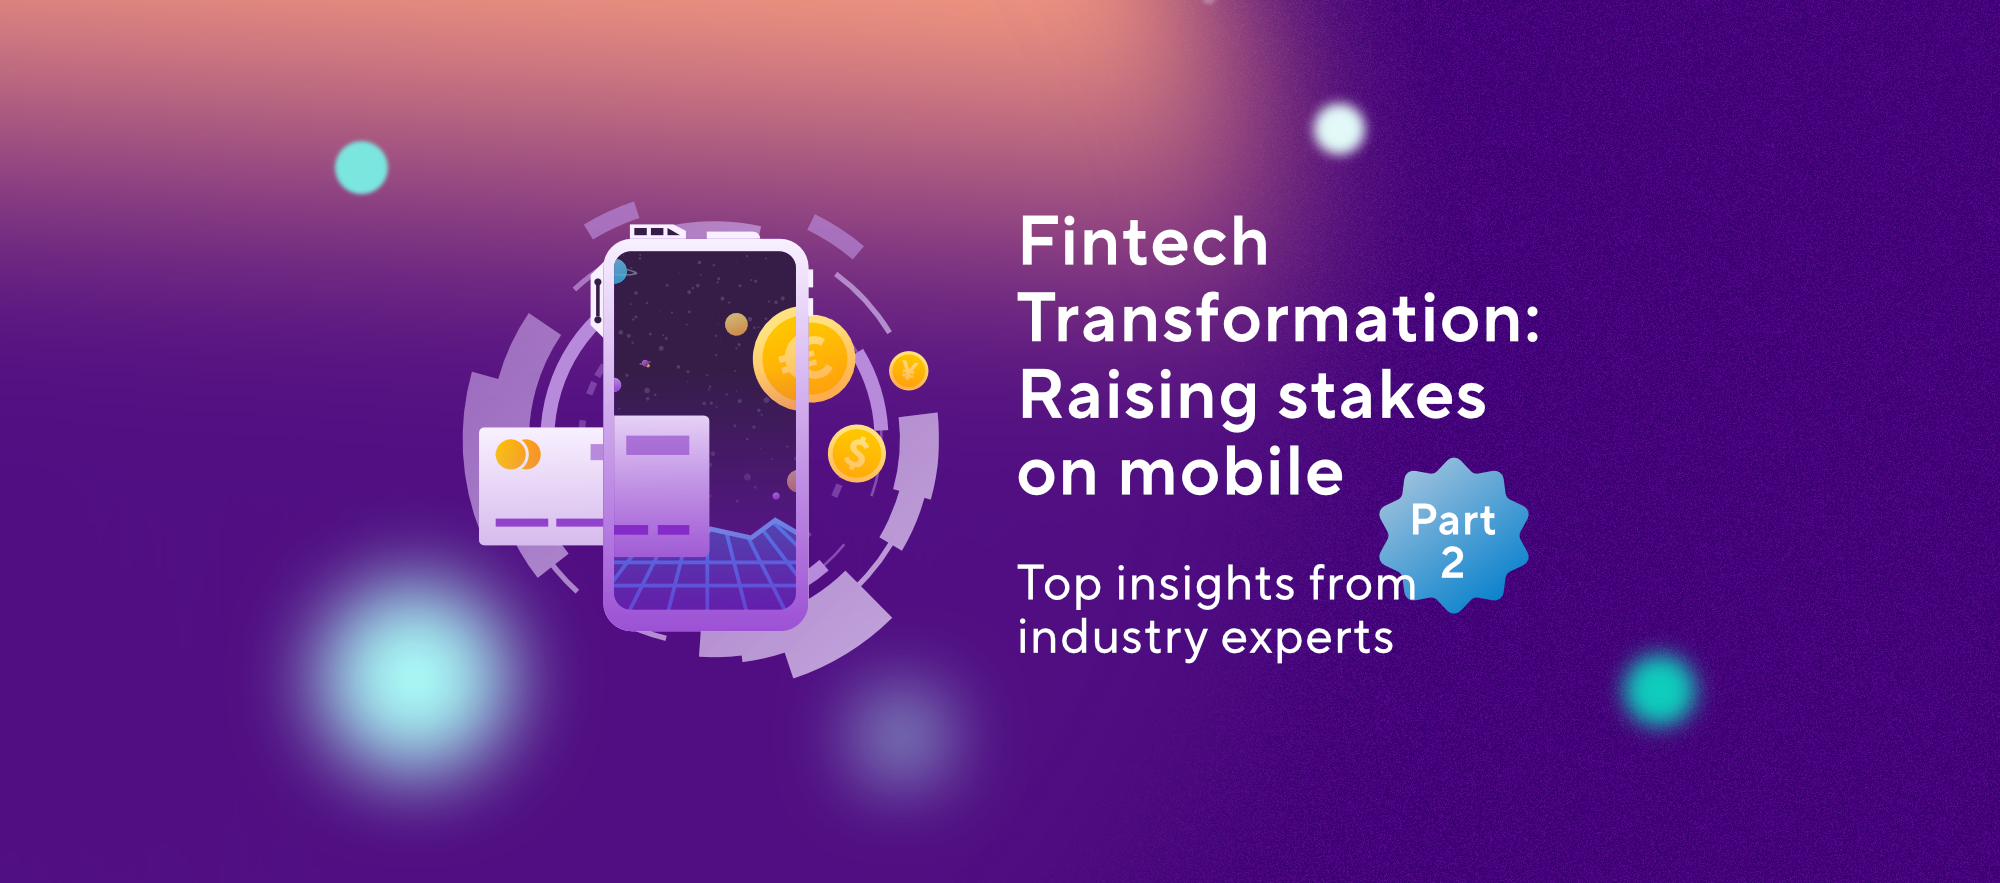 An expert's perspective on fintech trends and digital transformation across finance and banking